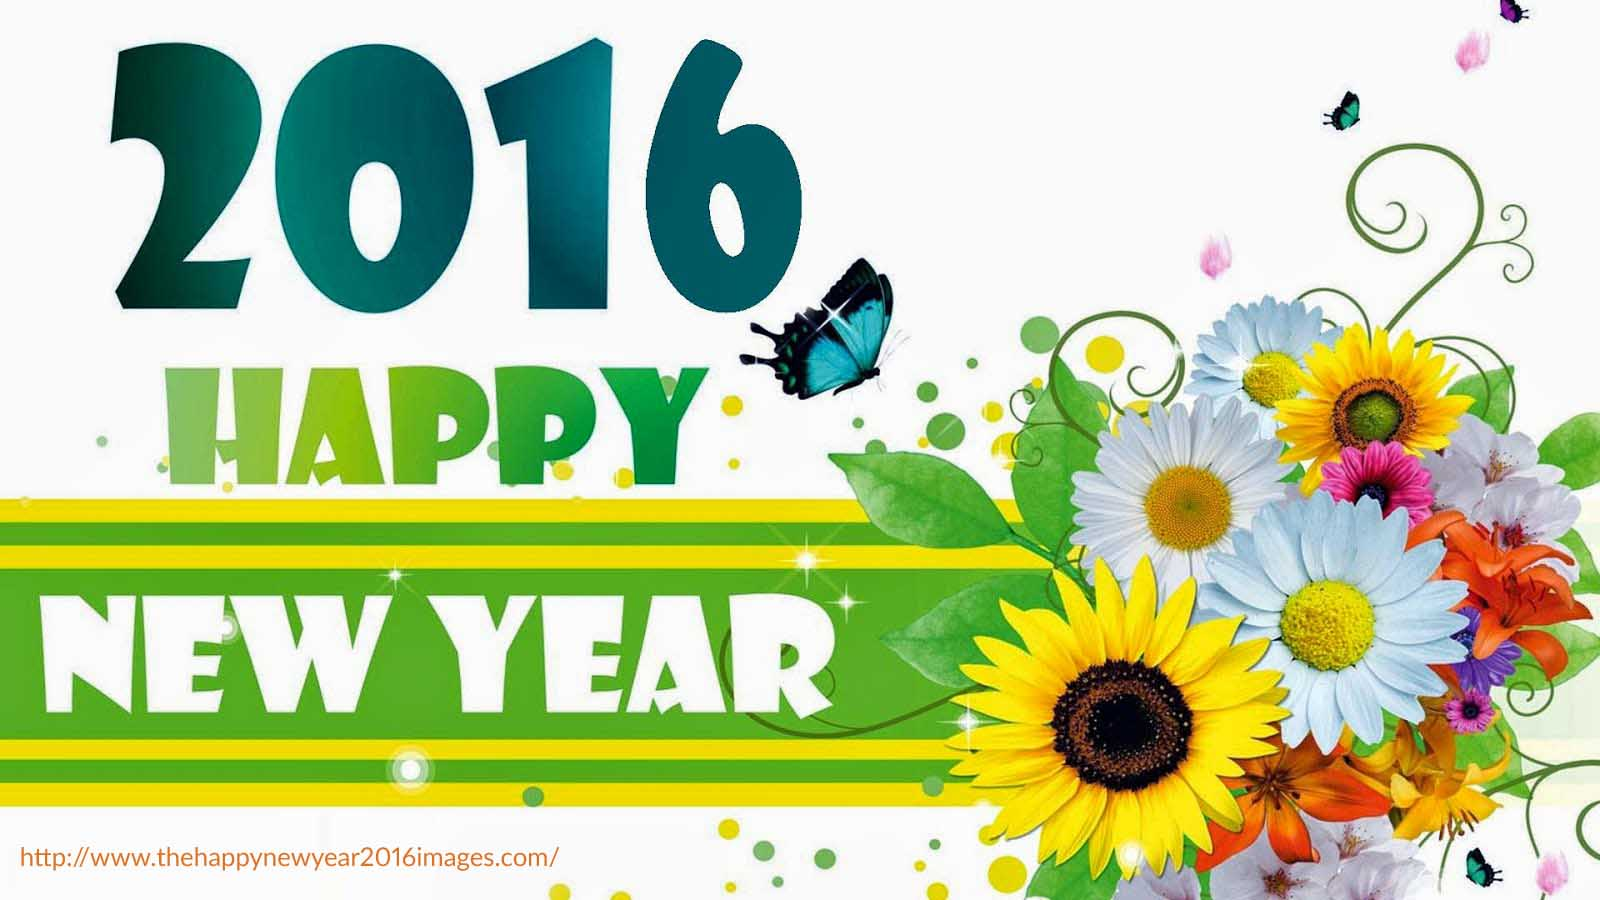 Wallpaper download new year 2015 - 2016 Images New Year 2016 Wishes New Year 2016 Sms